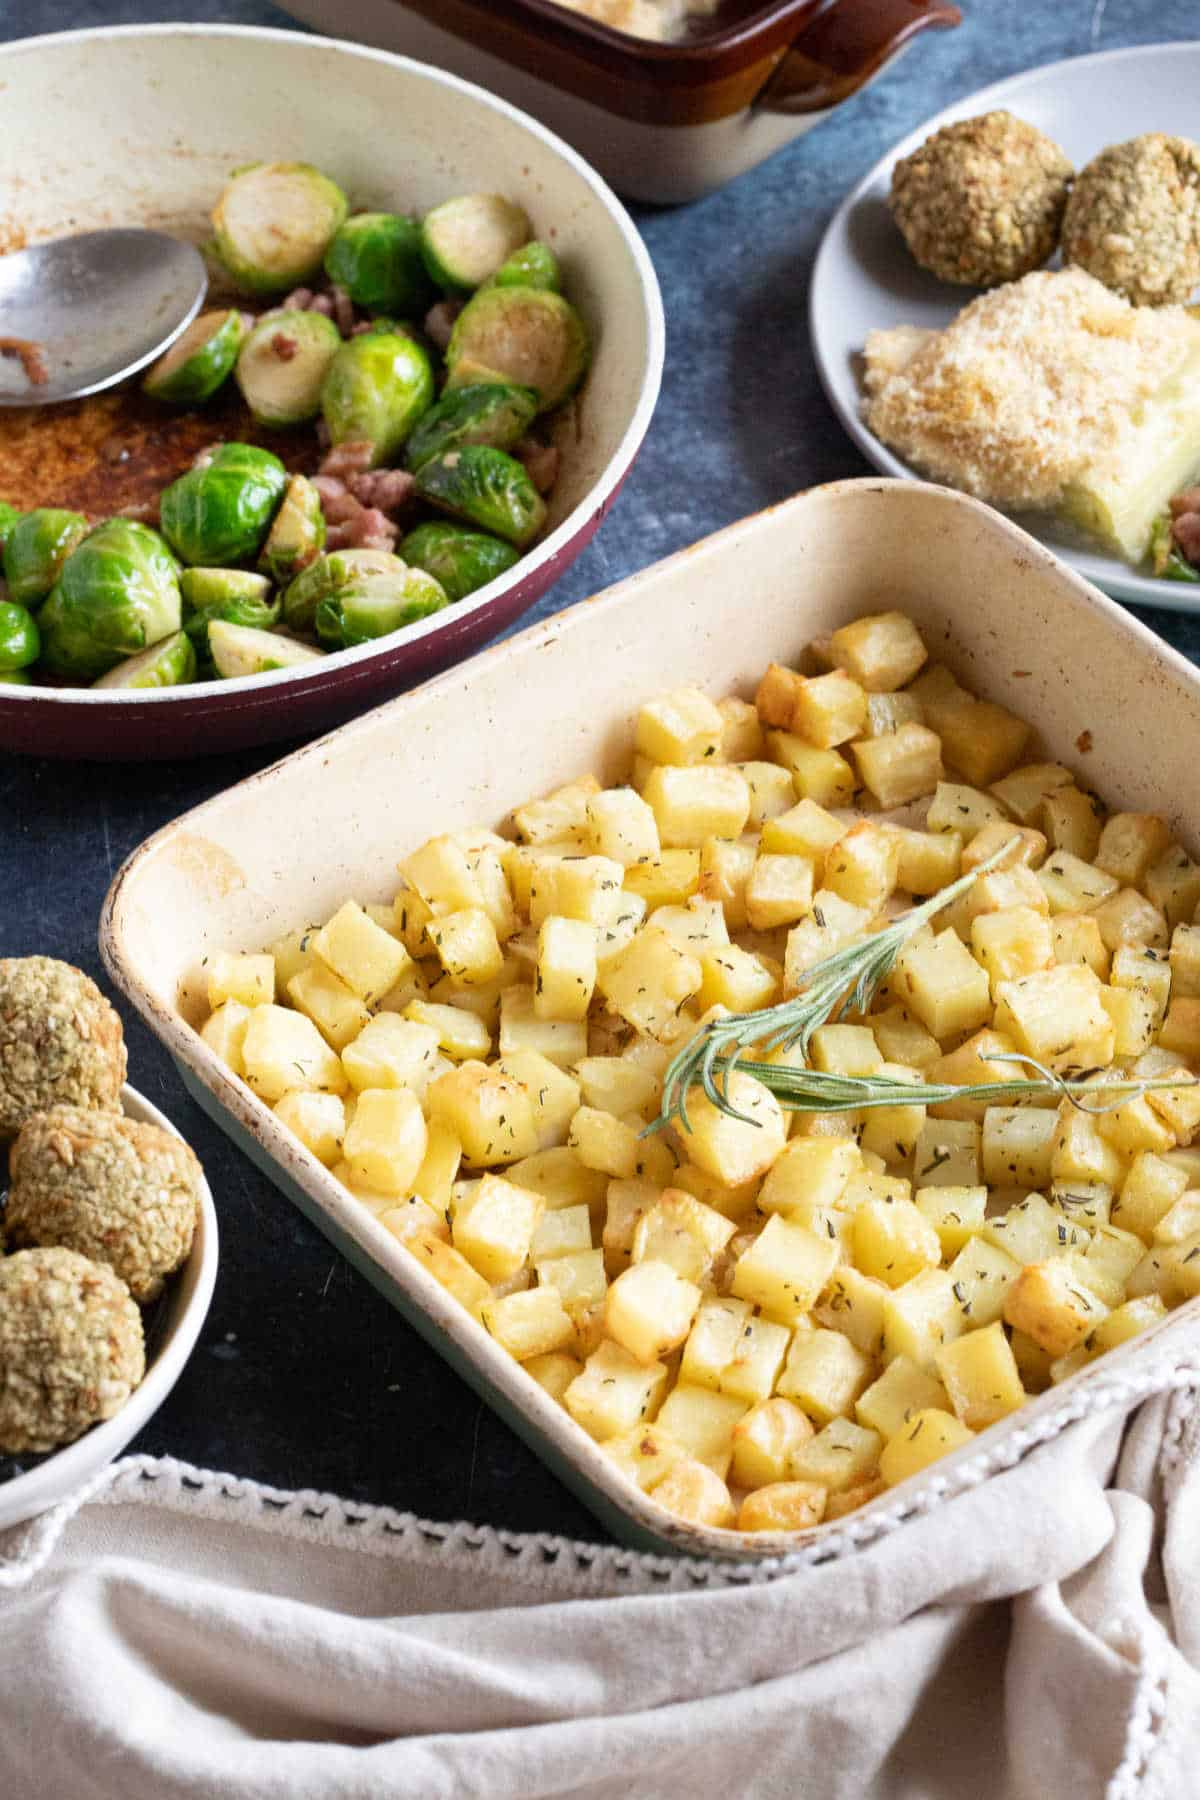 Parmentier potatoes with garlic and herbs in a roasting tin.